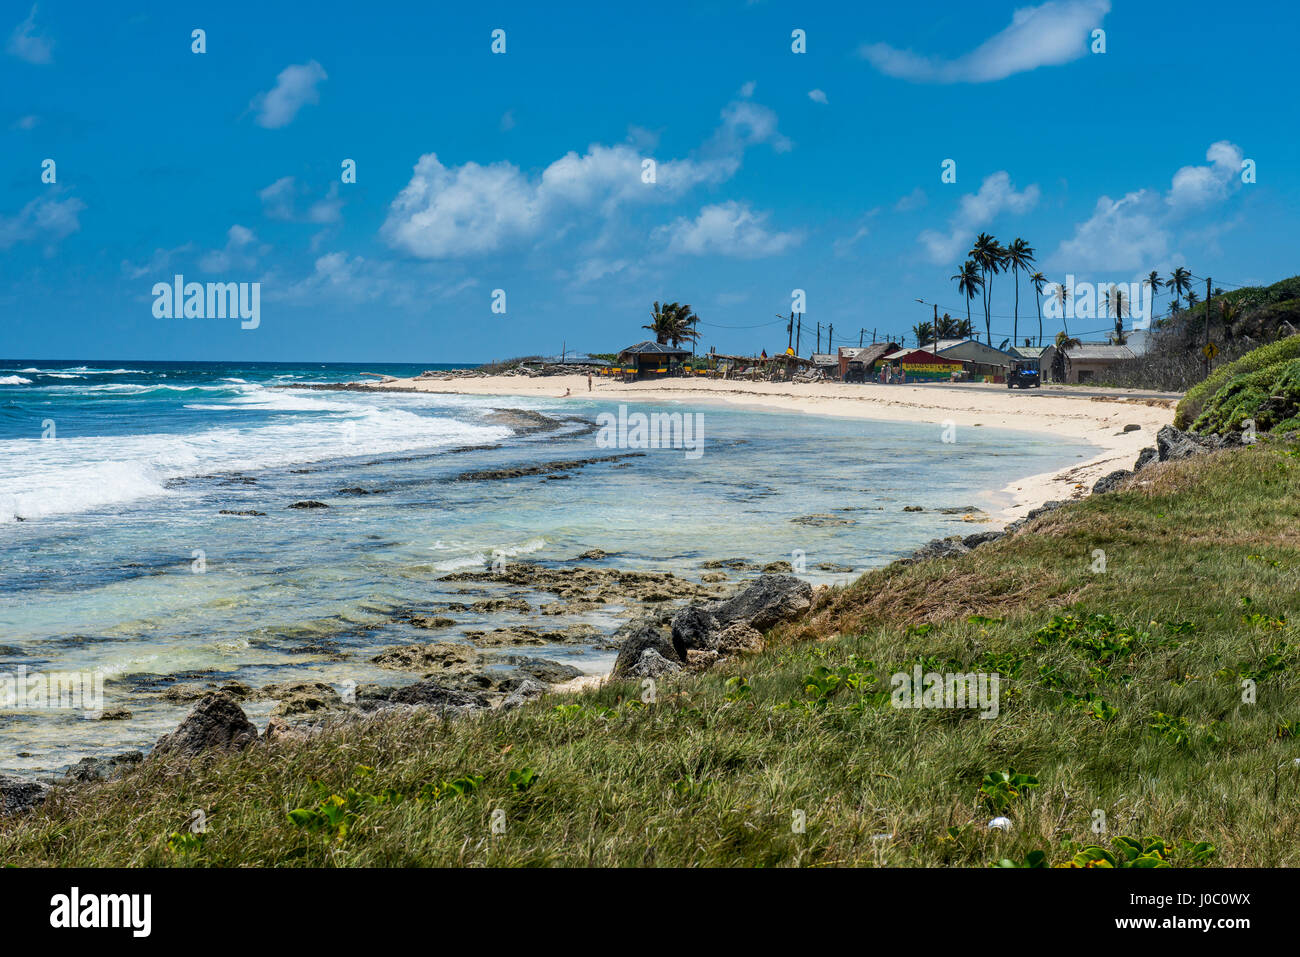 White sand beach, San Andres, Caribbean Sea, Colombia - Stock Image